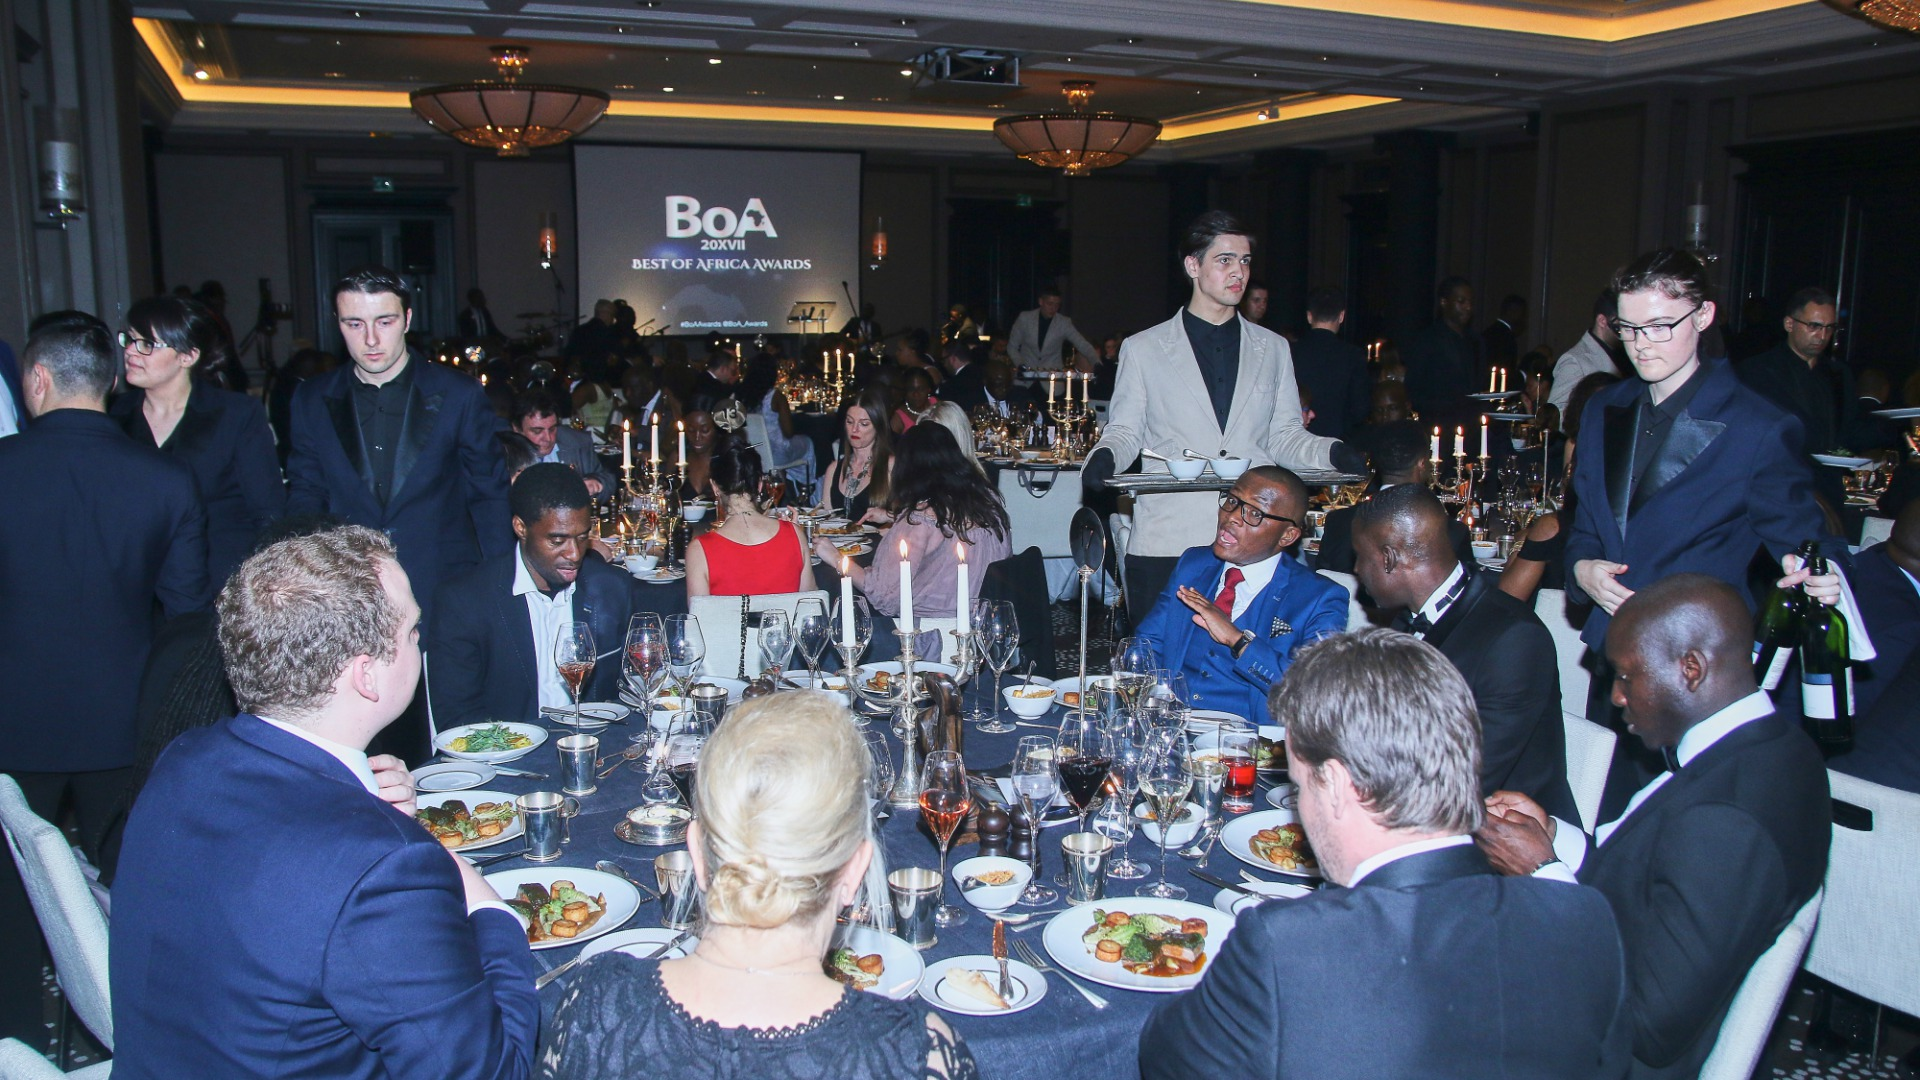 Best of Africa awards